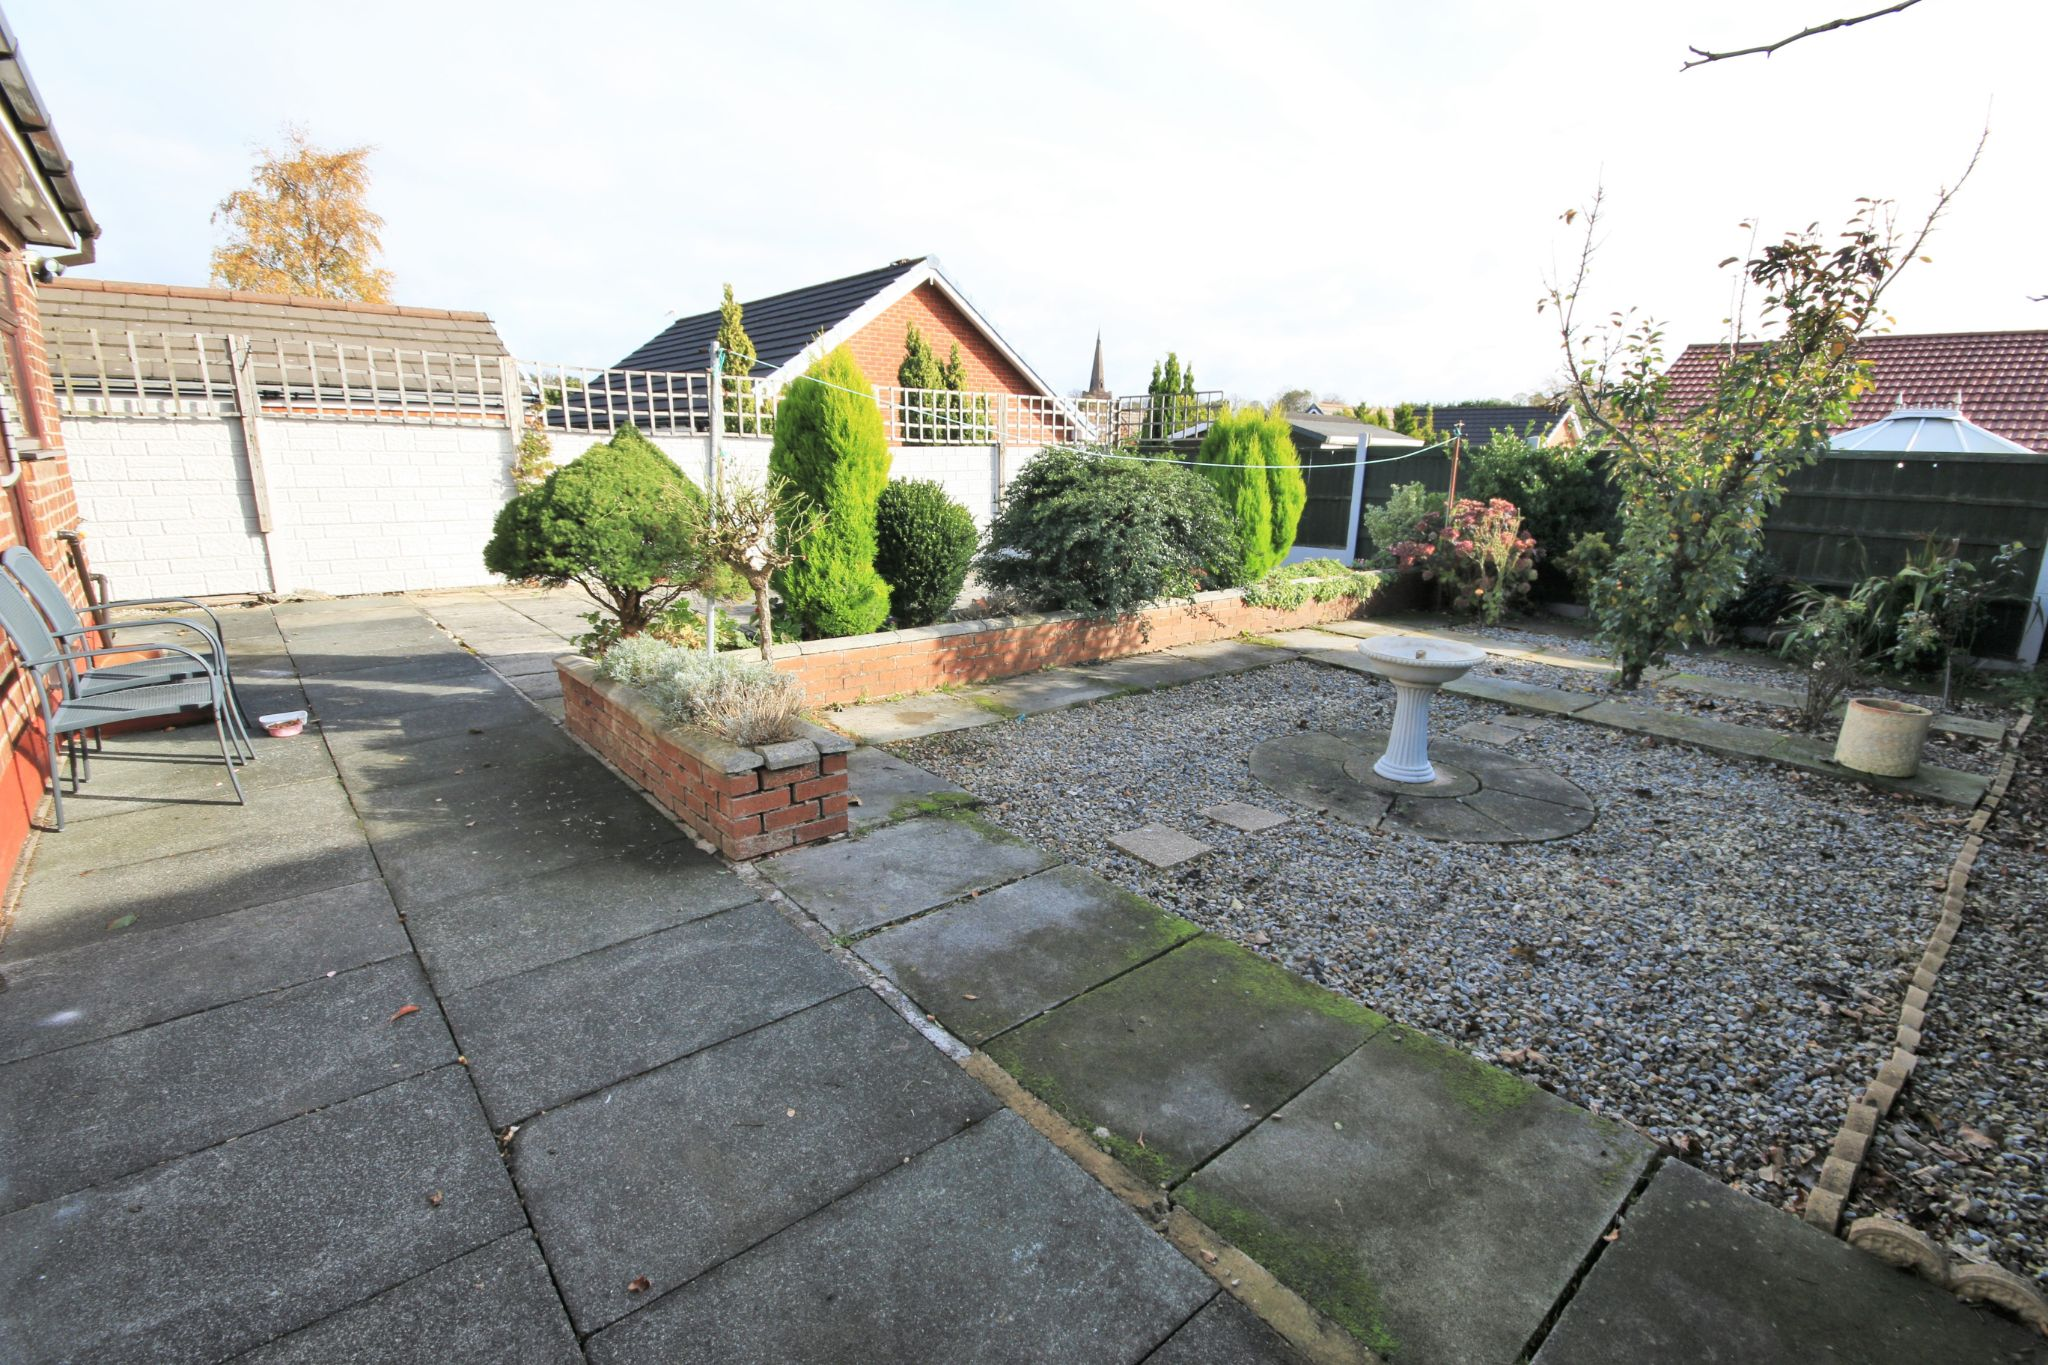 4 Bedroom Semi-detached Bungalow For Sale - Photograph 11